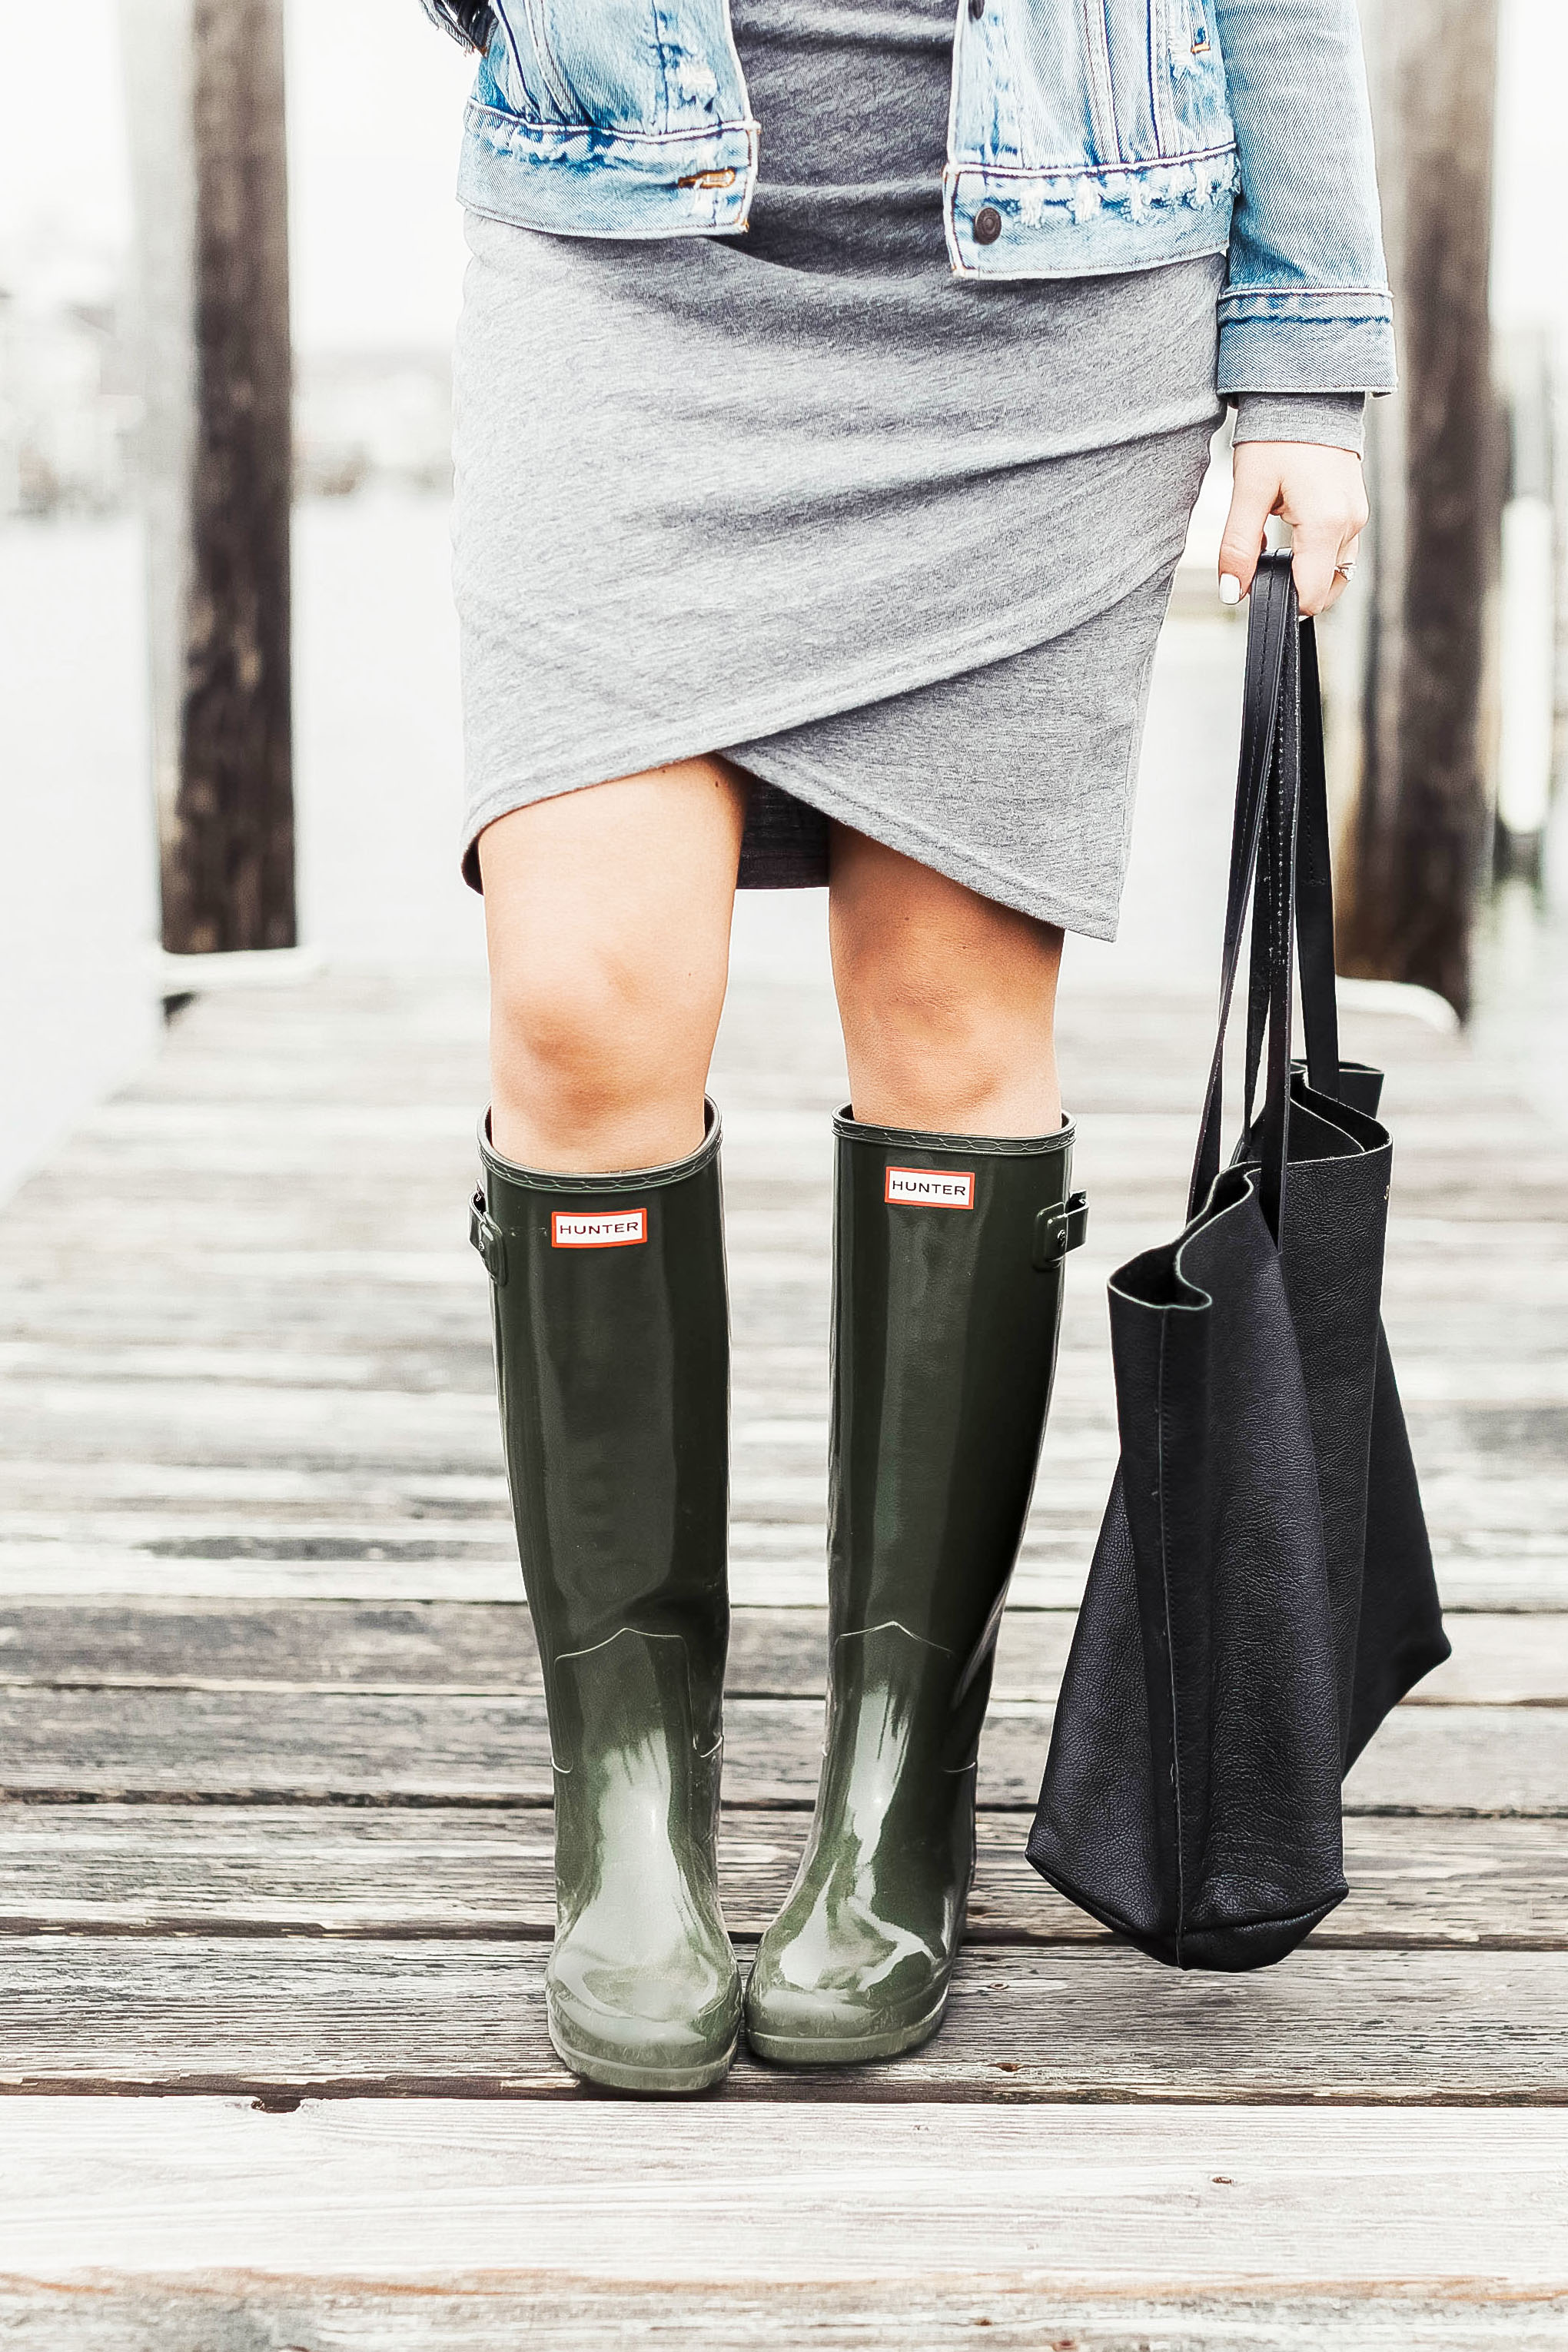 How to boots wear of varying heights exclusive photo